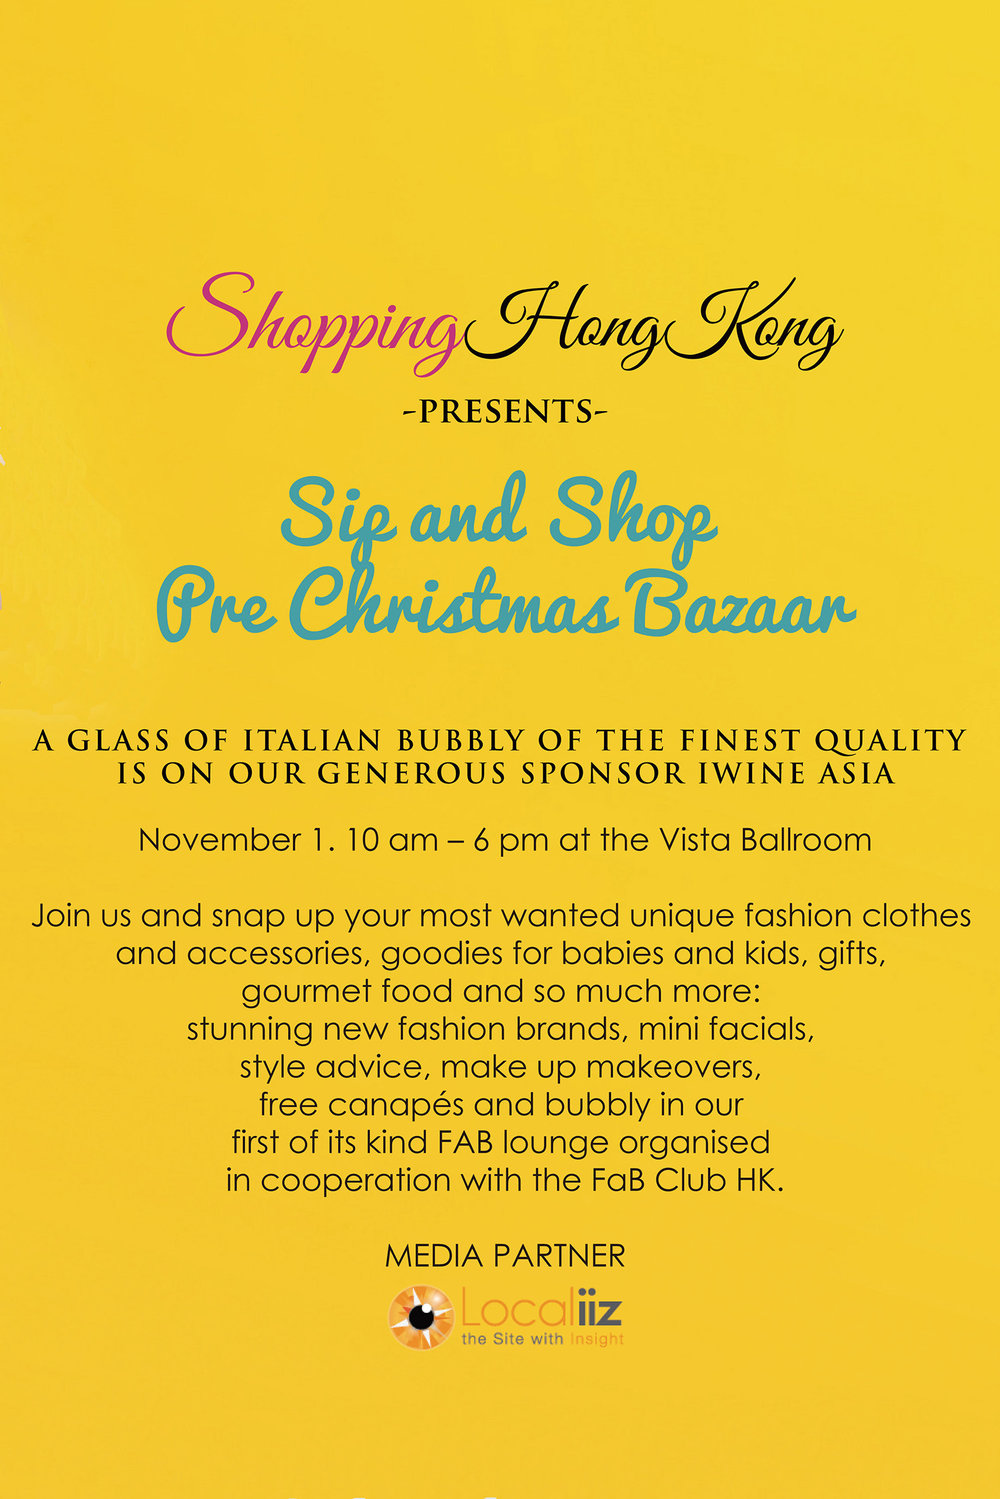 Paper-Roses | Events | Shopping Hong Kong Pre Christmas Bazaar Wednesday 1 November